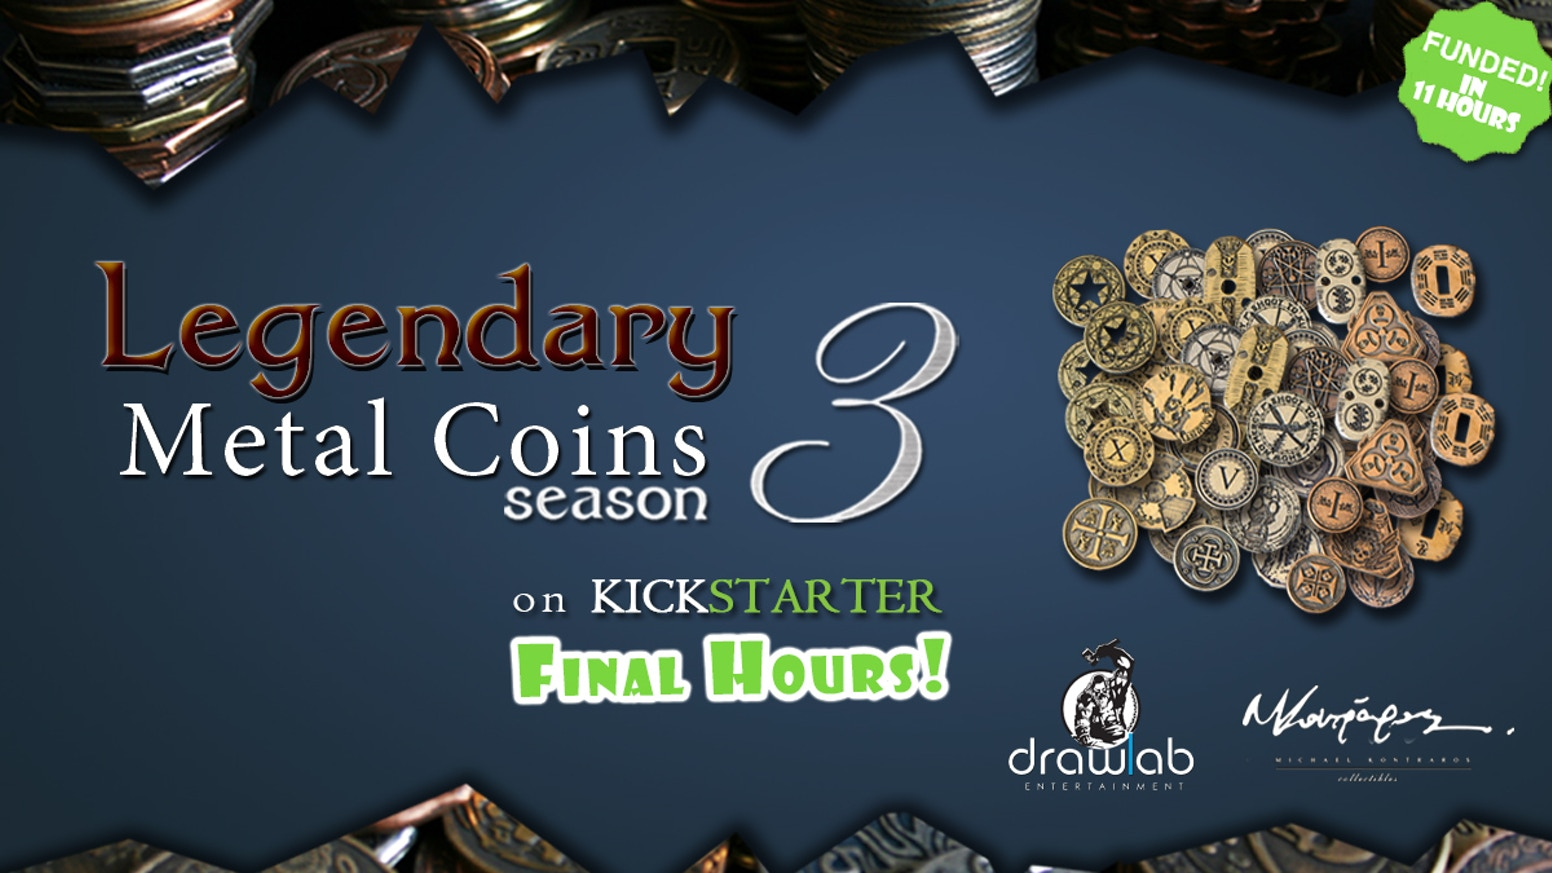 Legendary Metal Coins are back on Kickstarter, Big, Heavy and Beautiful. Enrich your gaming experience and make your games shine!